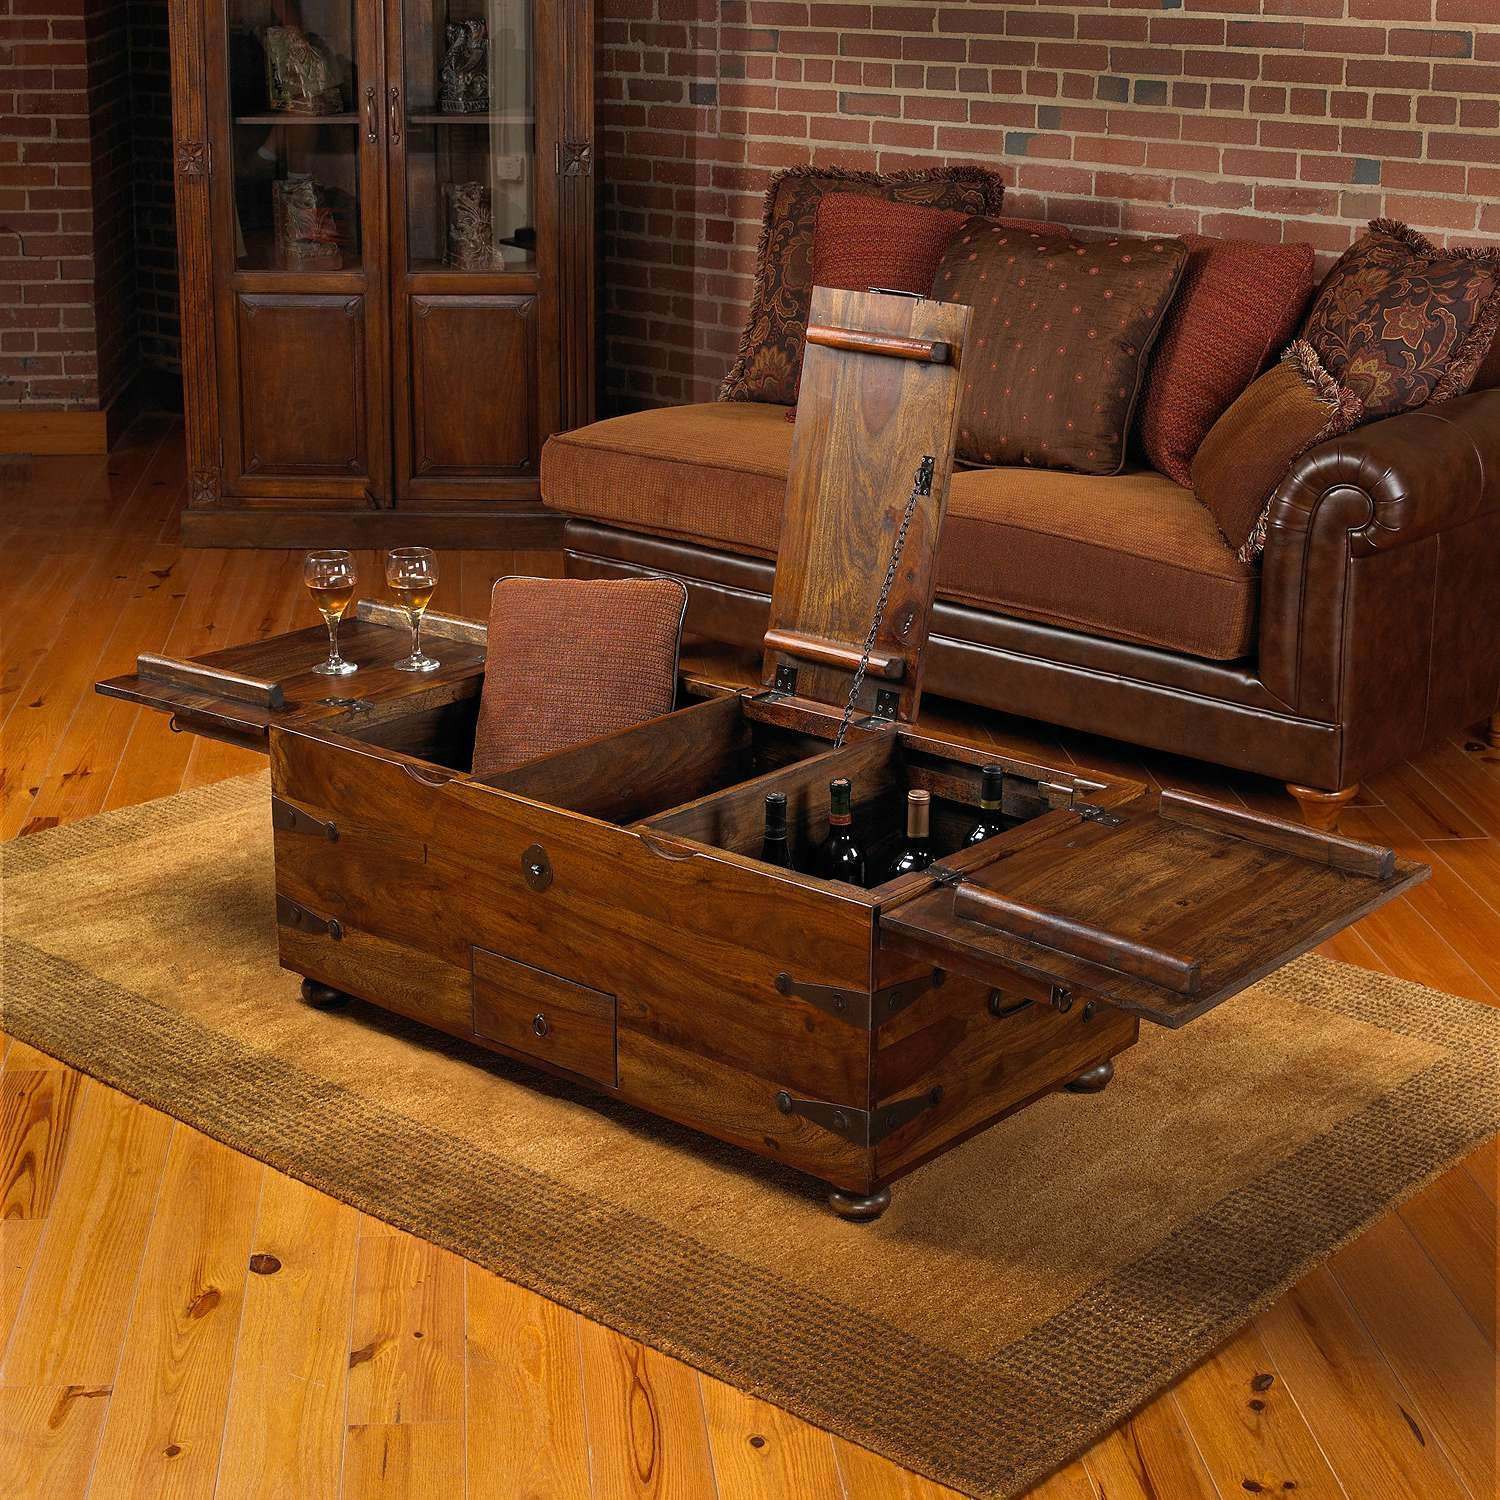 Fashionable Trunks Coffee Tables With Regard To Thakat Bar Box Trunk Coffee Table – Wine Enthusiast (View 6 of 20)